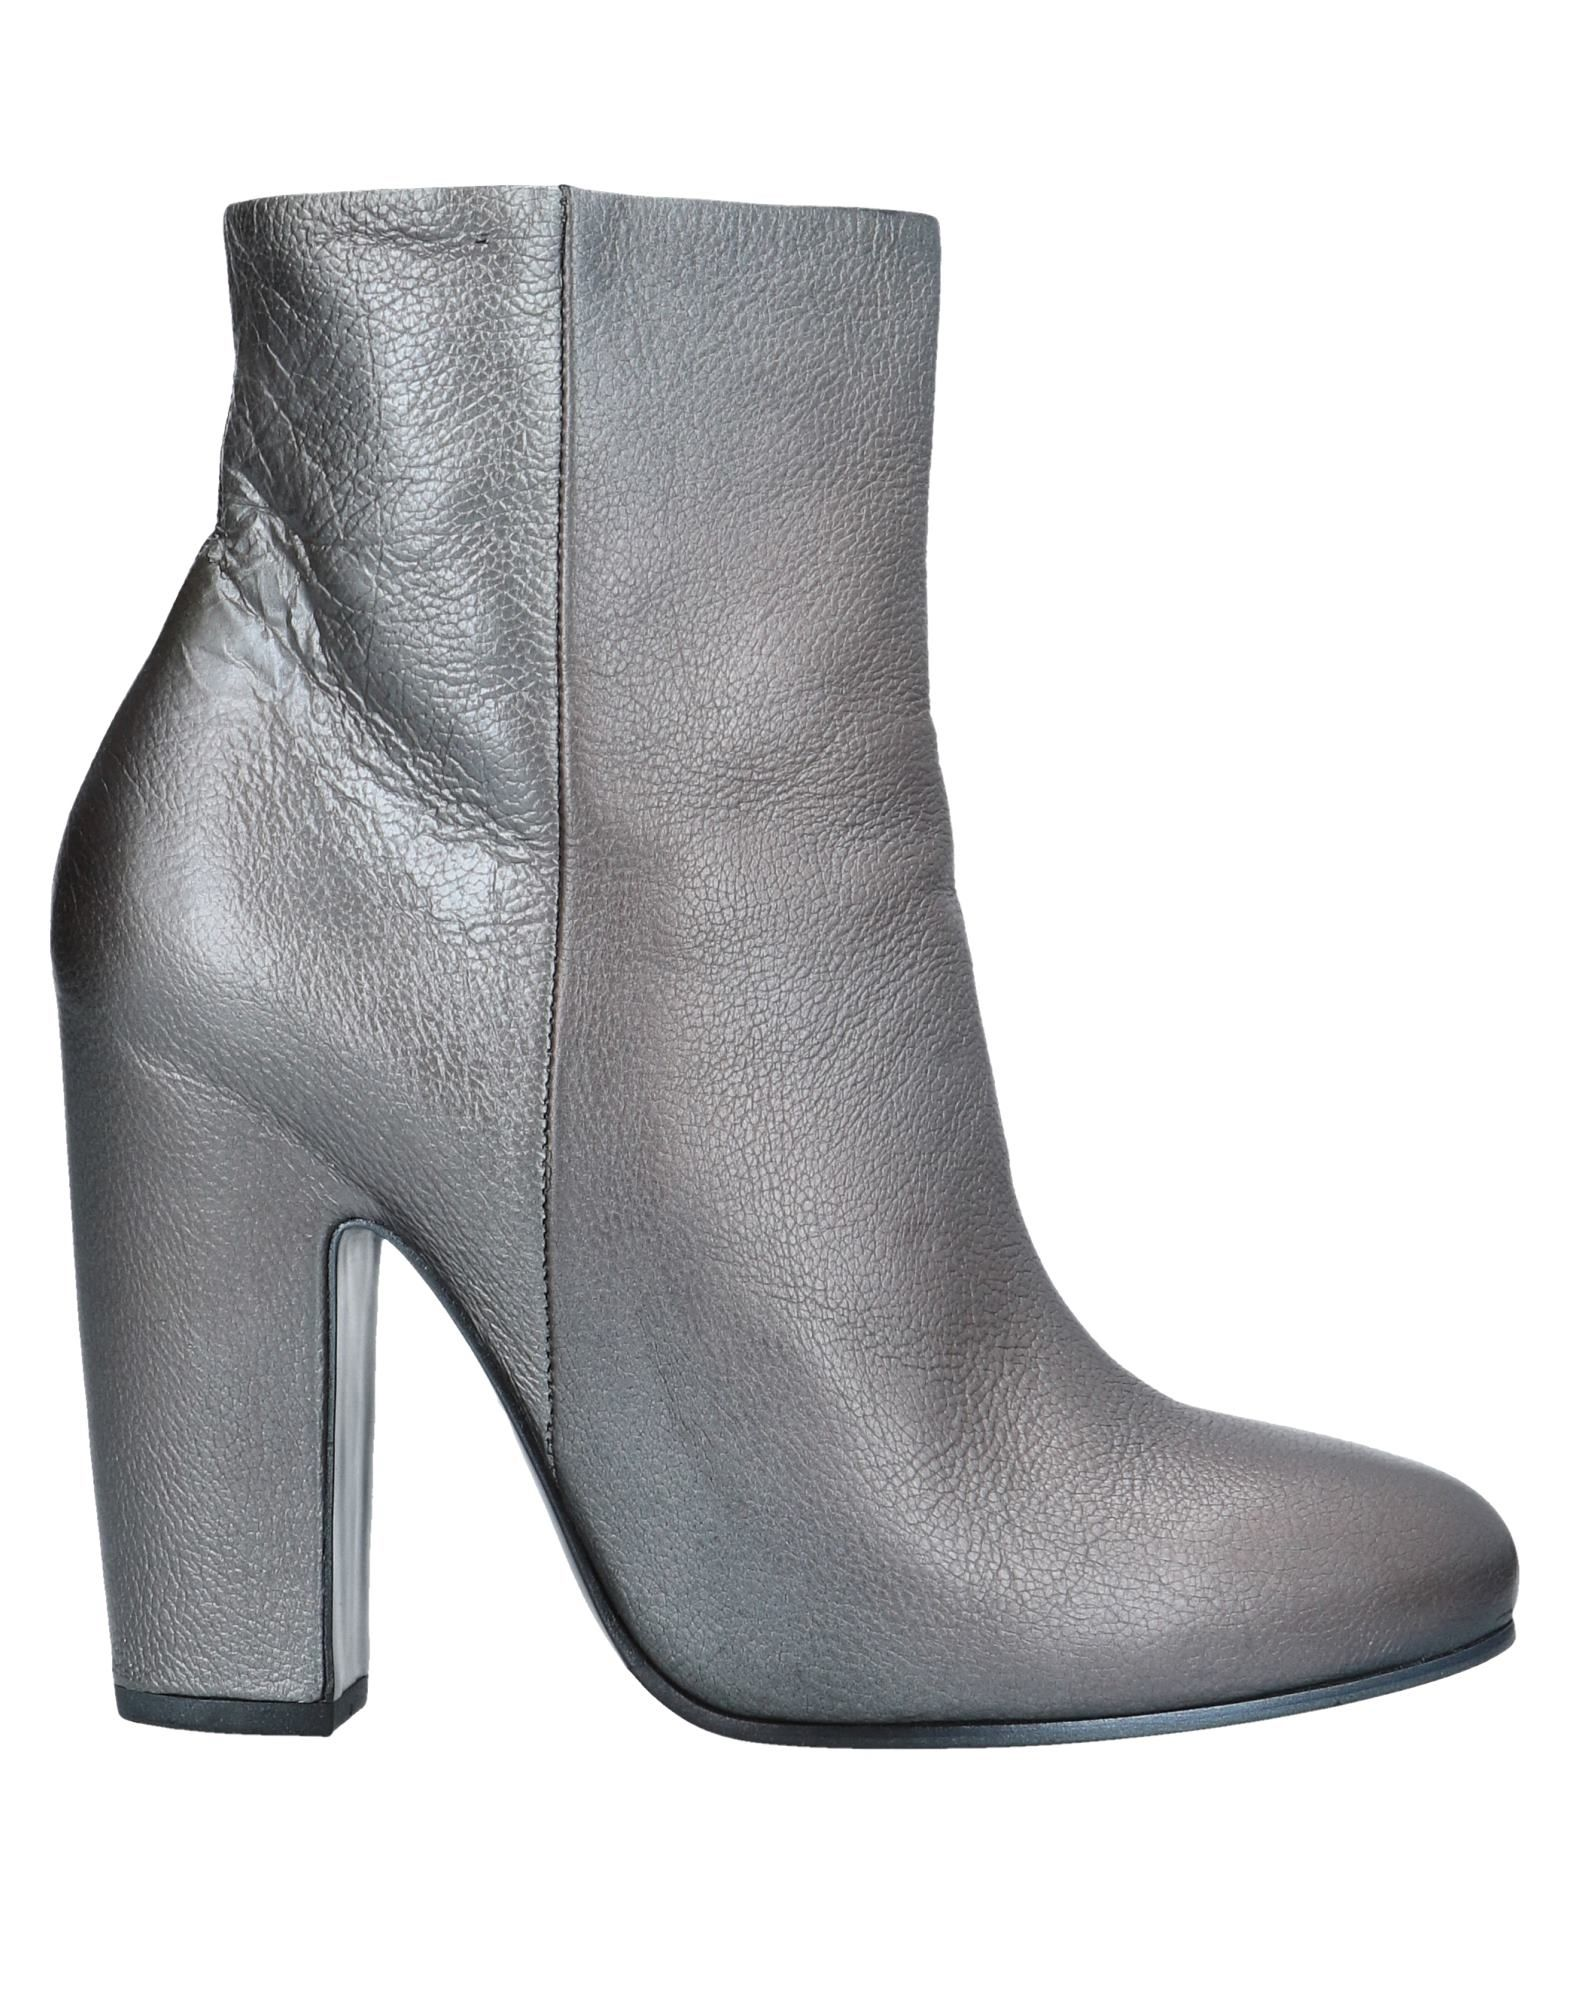 Vic Matiē Ankle Boot - Women Vic Matiē Ankle Boots on online on Boots  Australia - 11547408NF 3c81fa